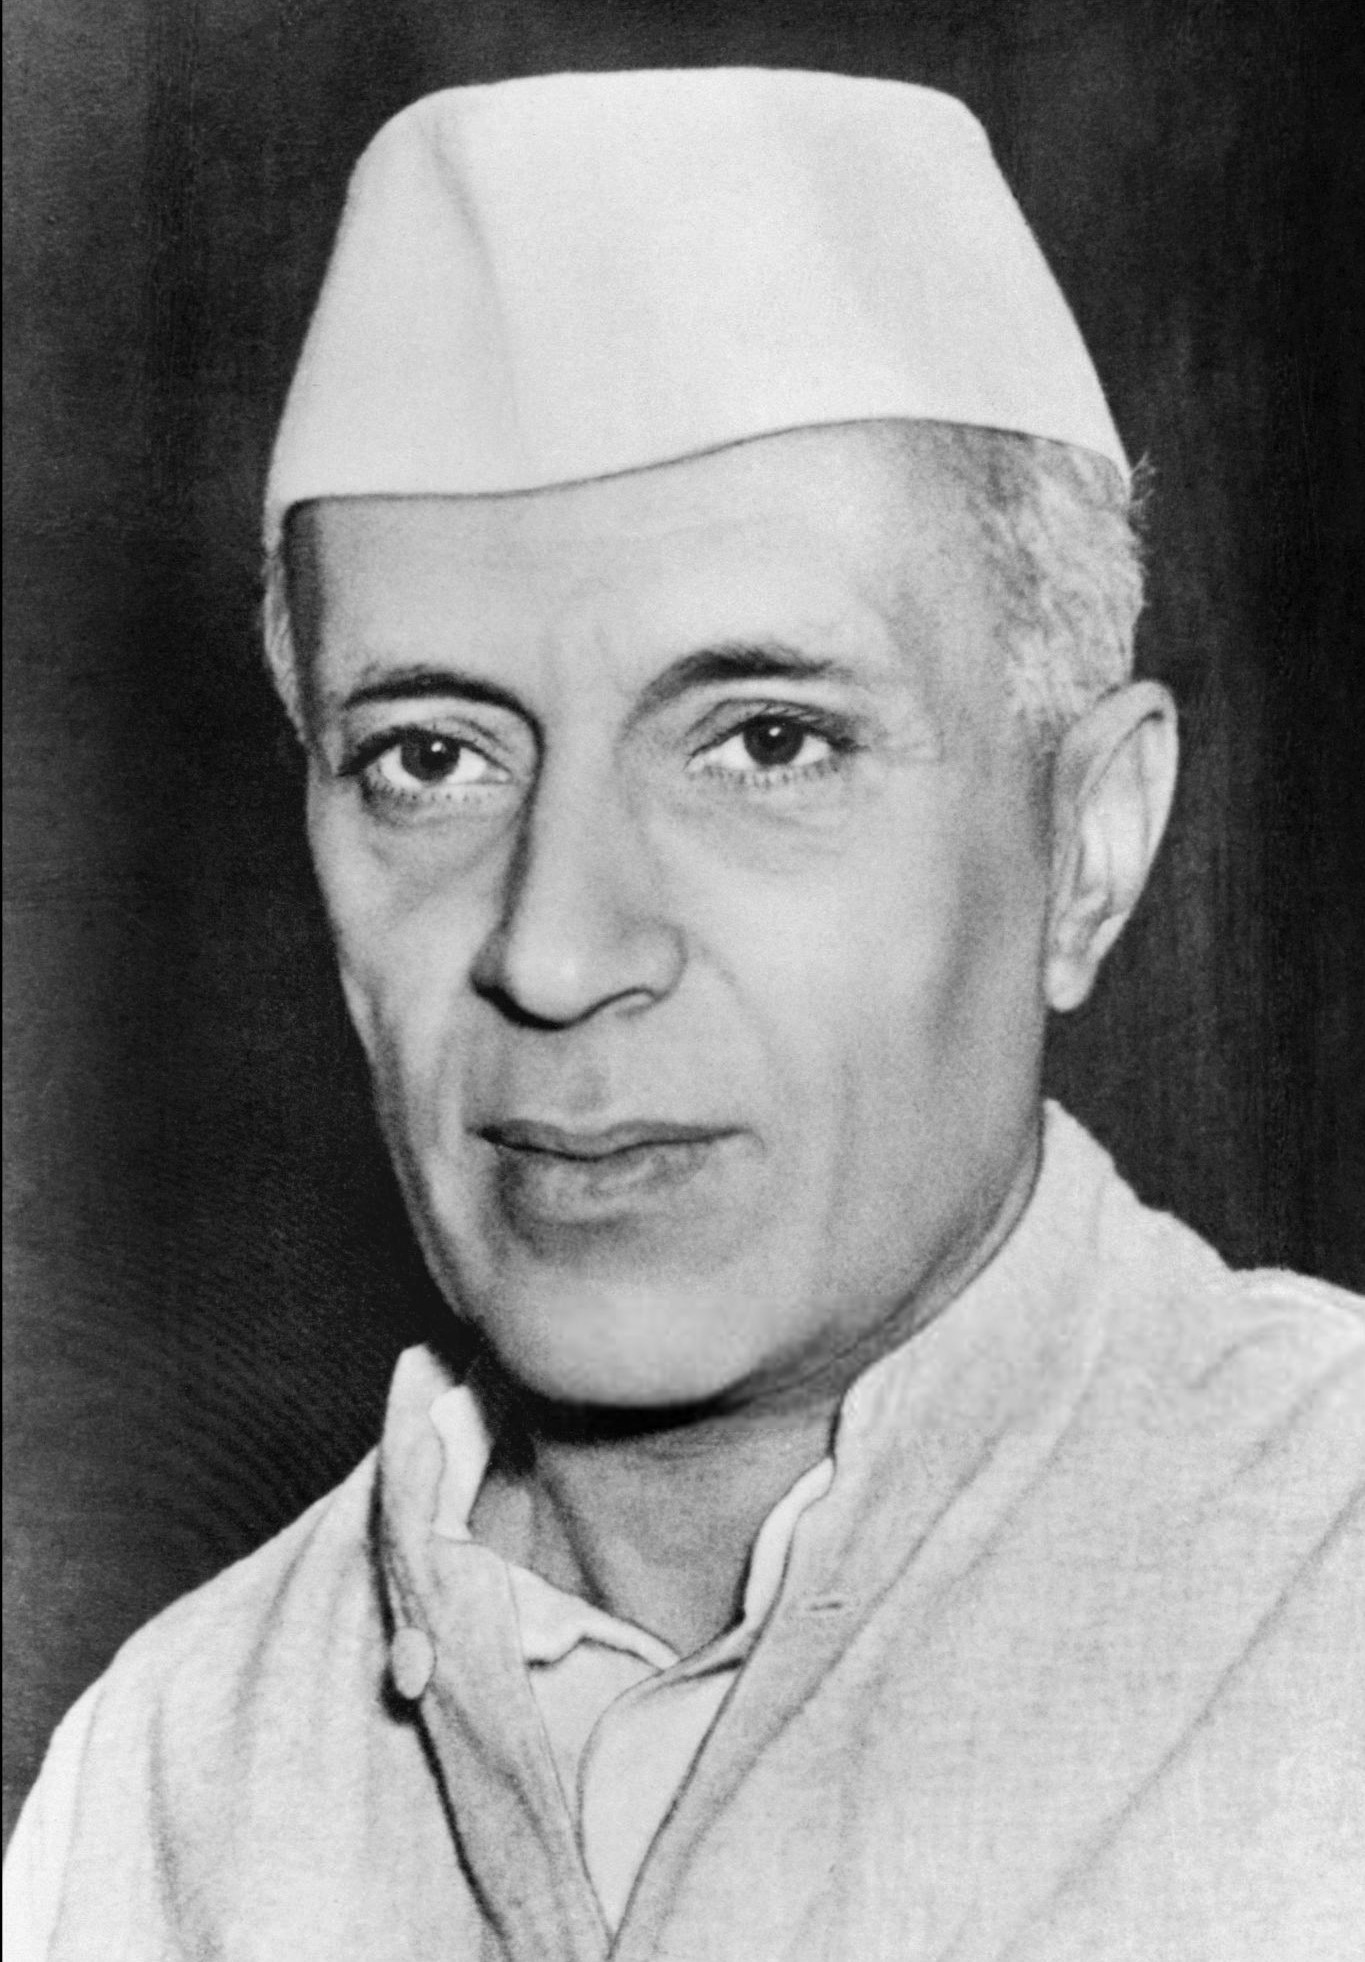 Photo of Jawaharlal Nehru